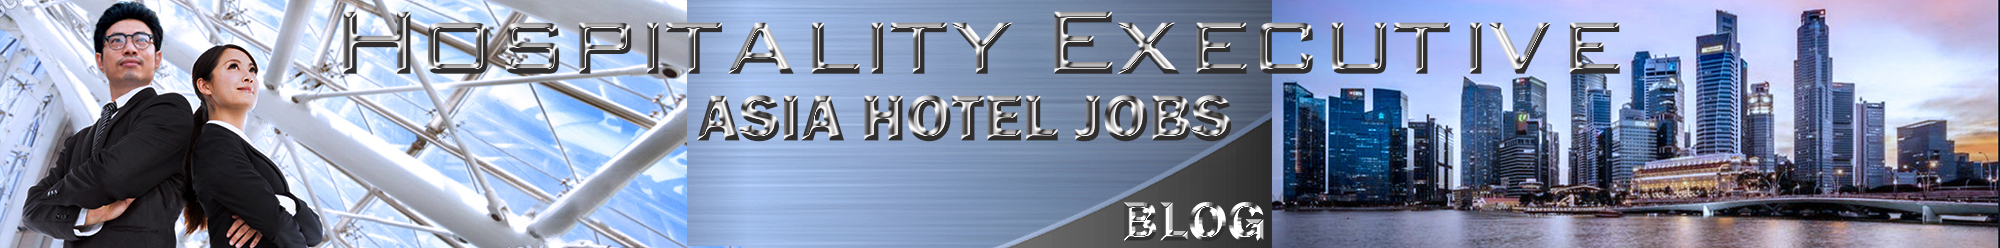 Hospitality Hotel manager and Chef Jobs Asia blog